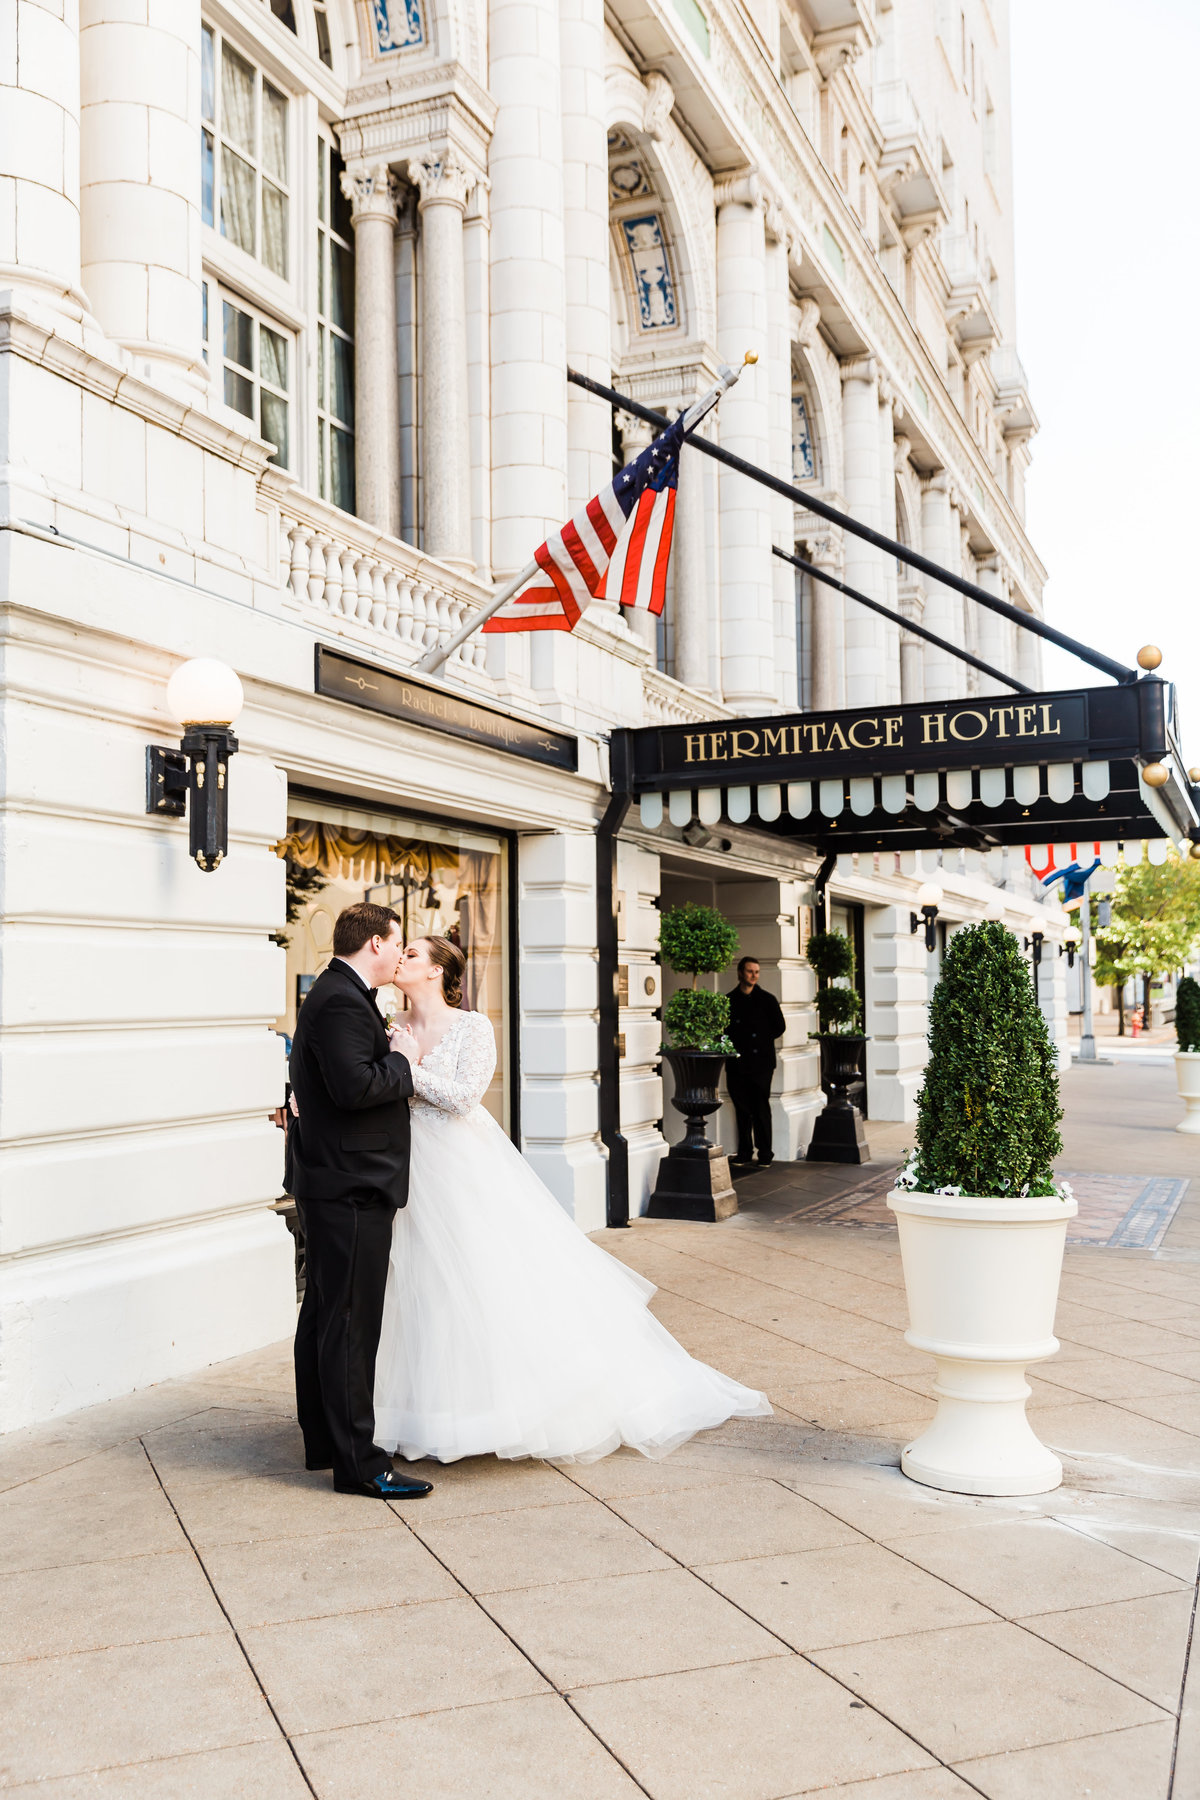 73hermitage-hotel-weddings